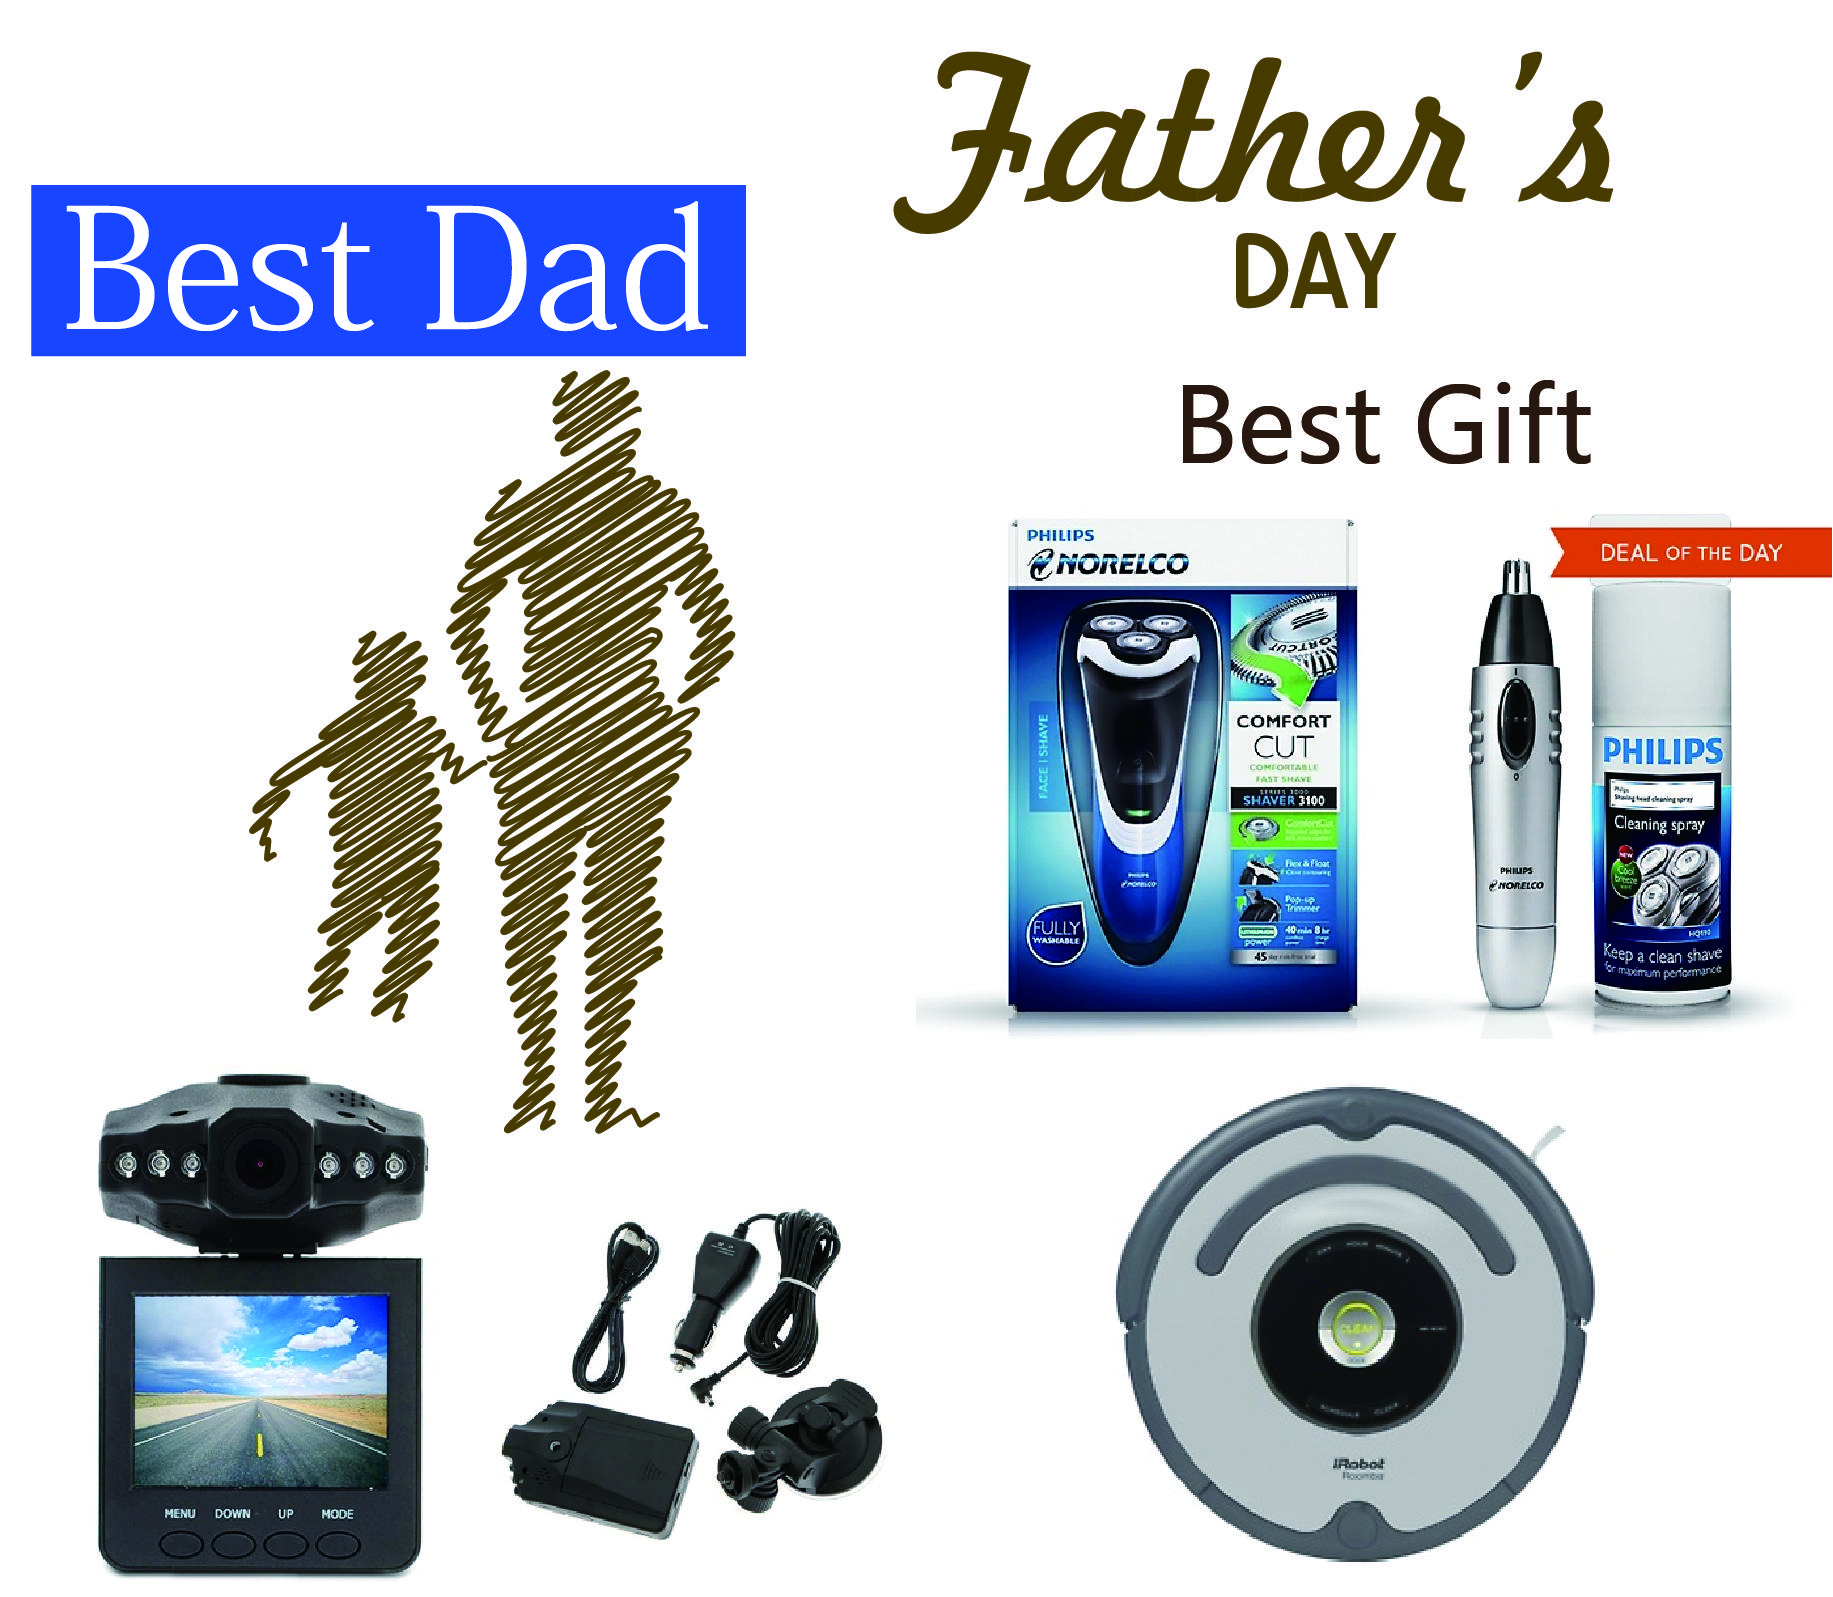 Farther's Day Deals Super Powered Gifts & Gadgets for Dad